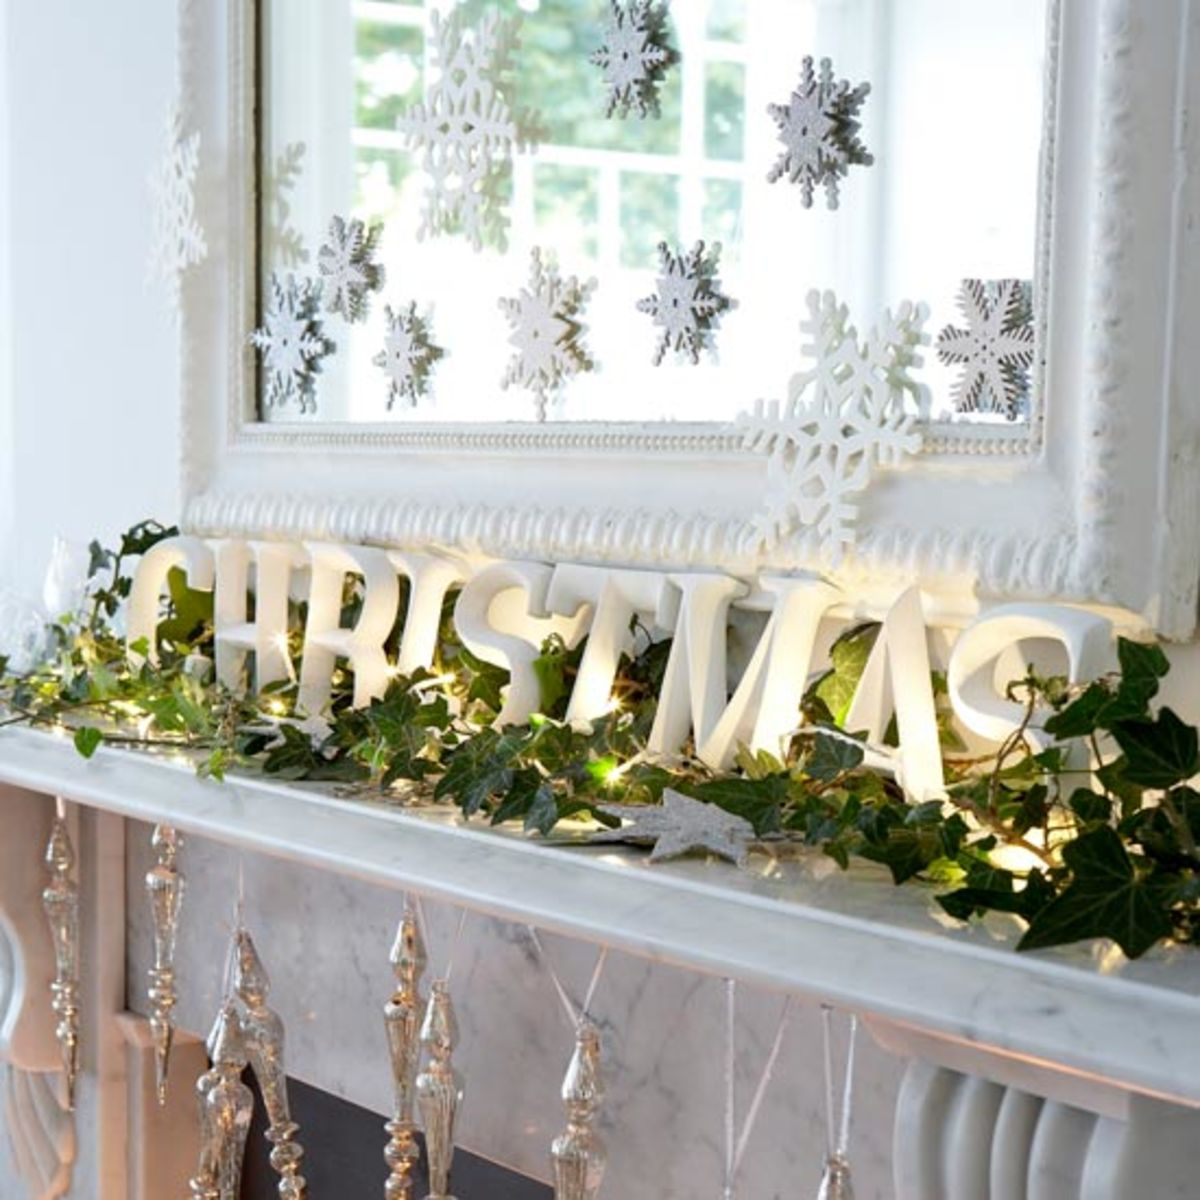 Budget Christmas Decorating: Home Decorating On A Budget: Christmas Decoration Ideas